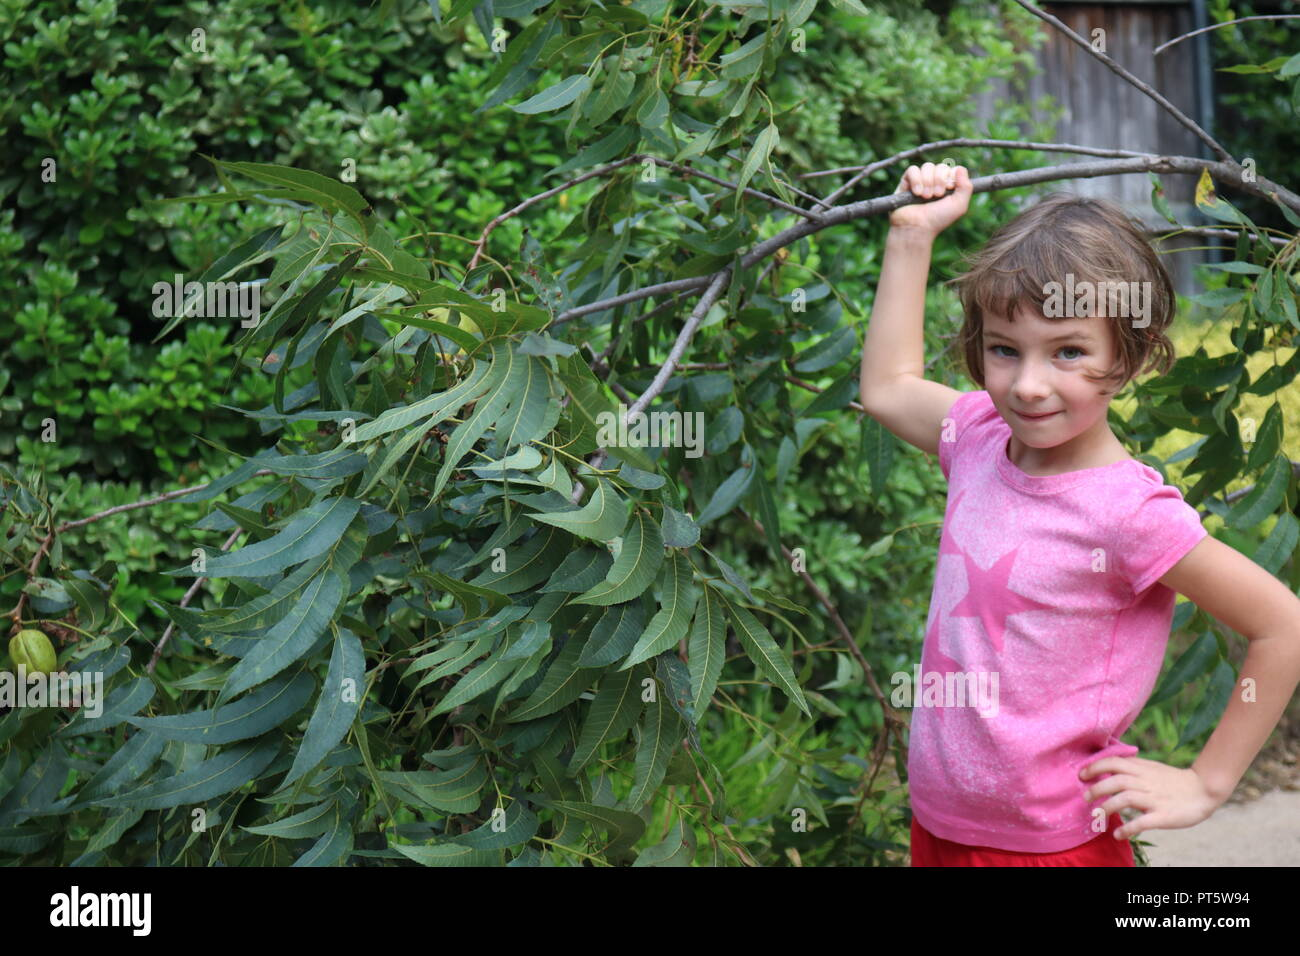 Little girl helping with yard work - Stock Image